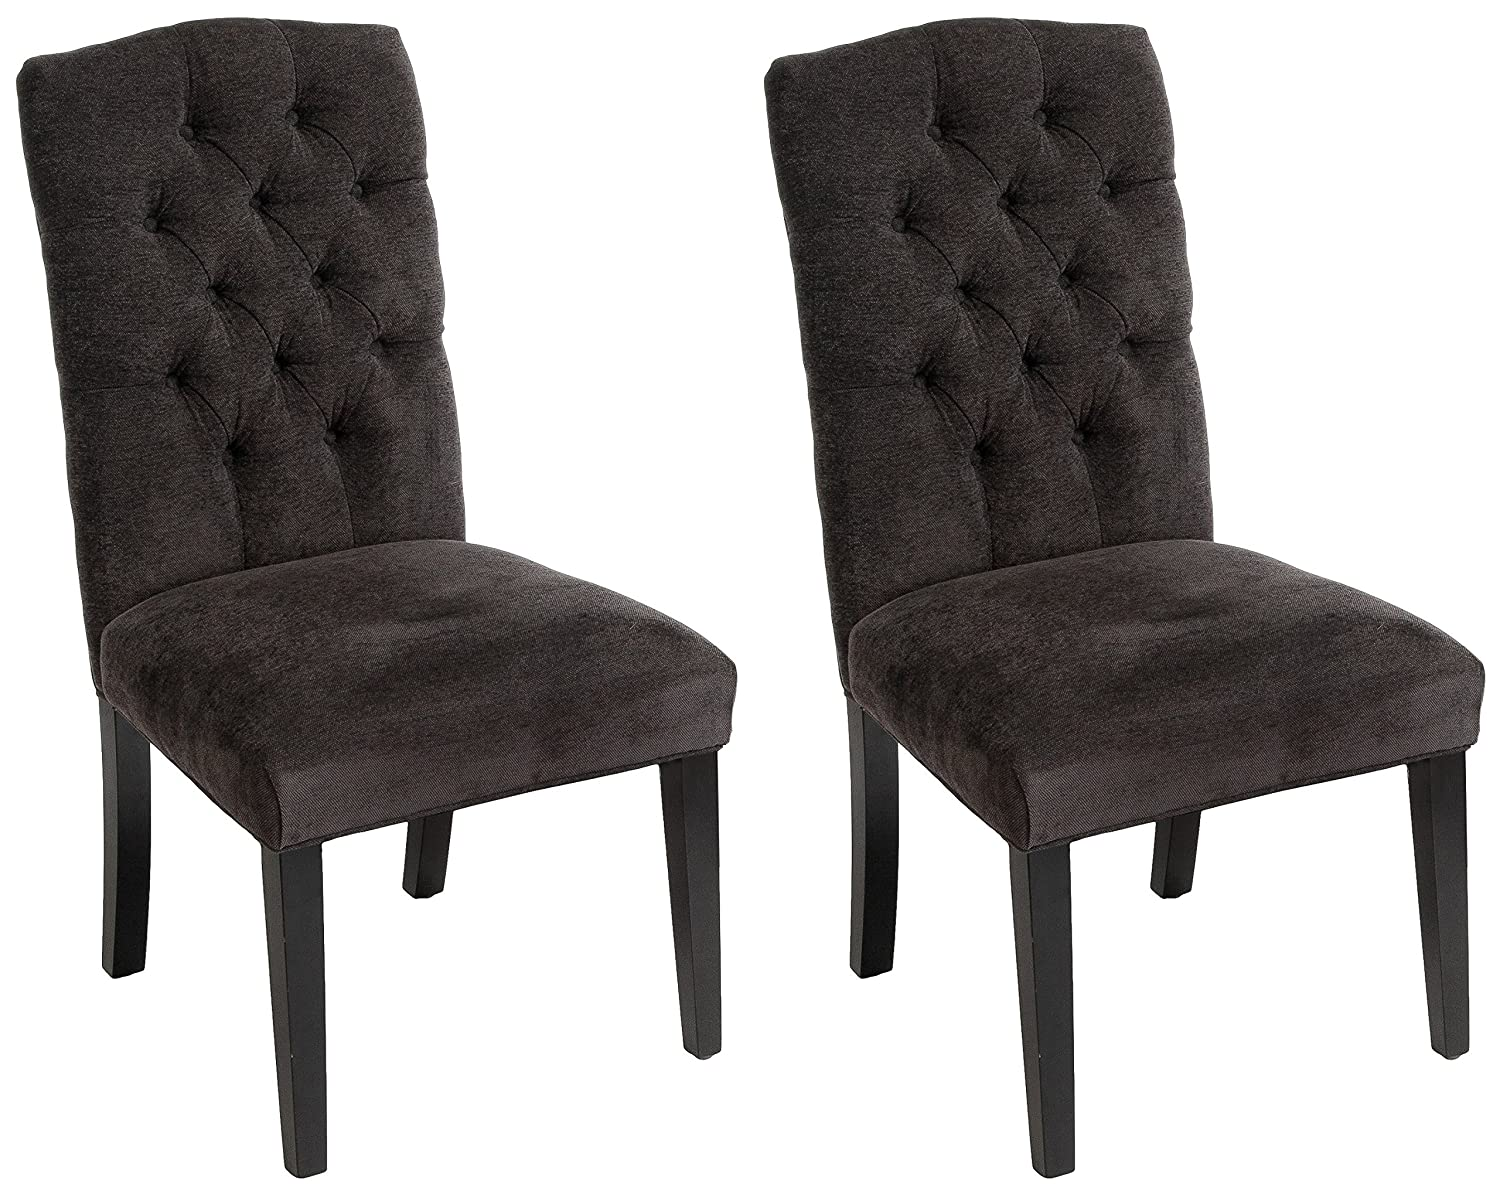 Admirable Christopher Knight Home 234897 Crown Top Dark Grey Dining Chairs Set Of 2 Download Free Architecture Designs Scobabritishbridgeorg